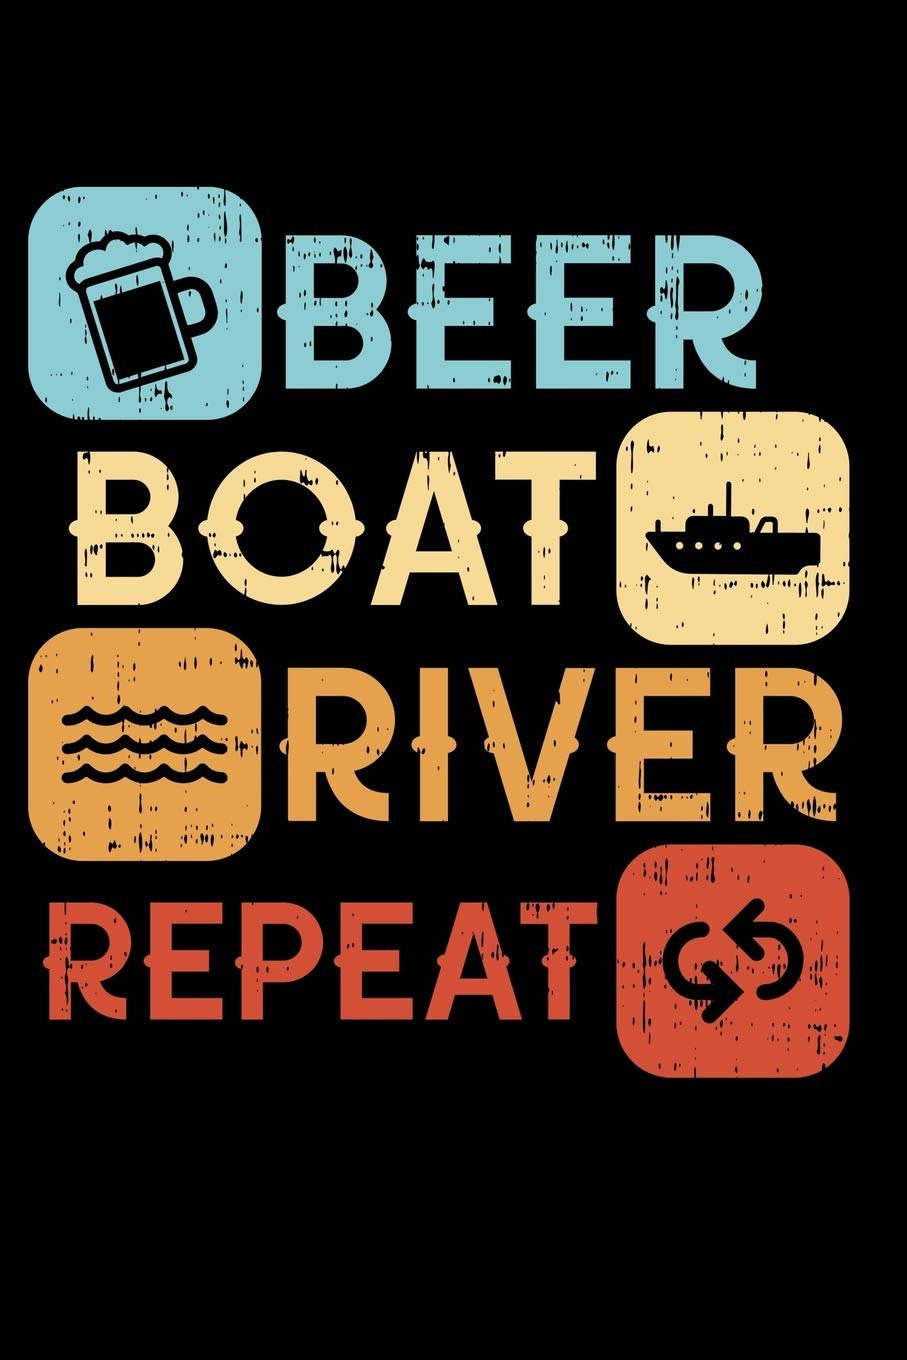 Funny River Life Notebook: Beer Boat River Repeat I lined ...